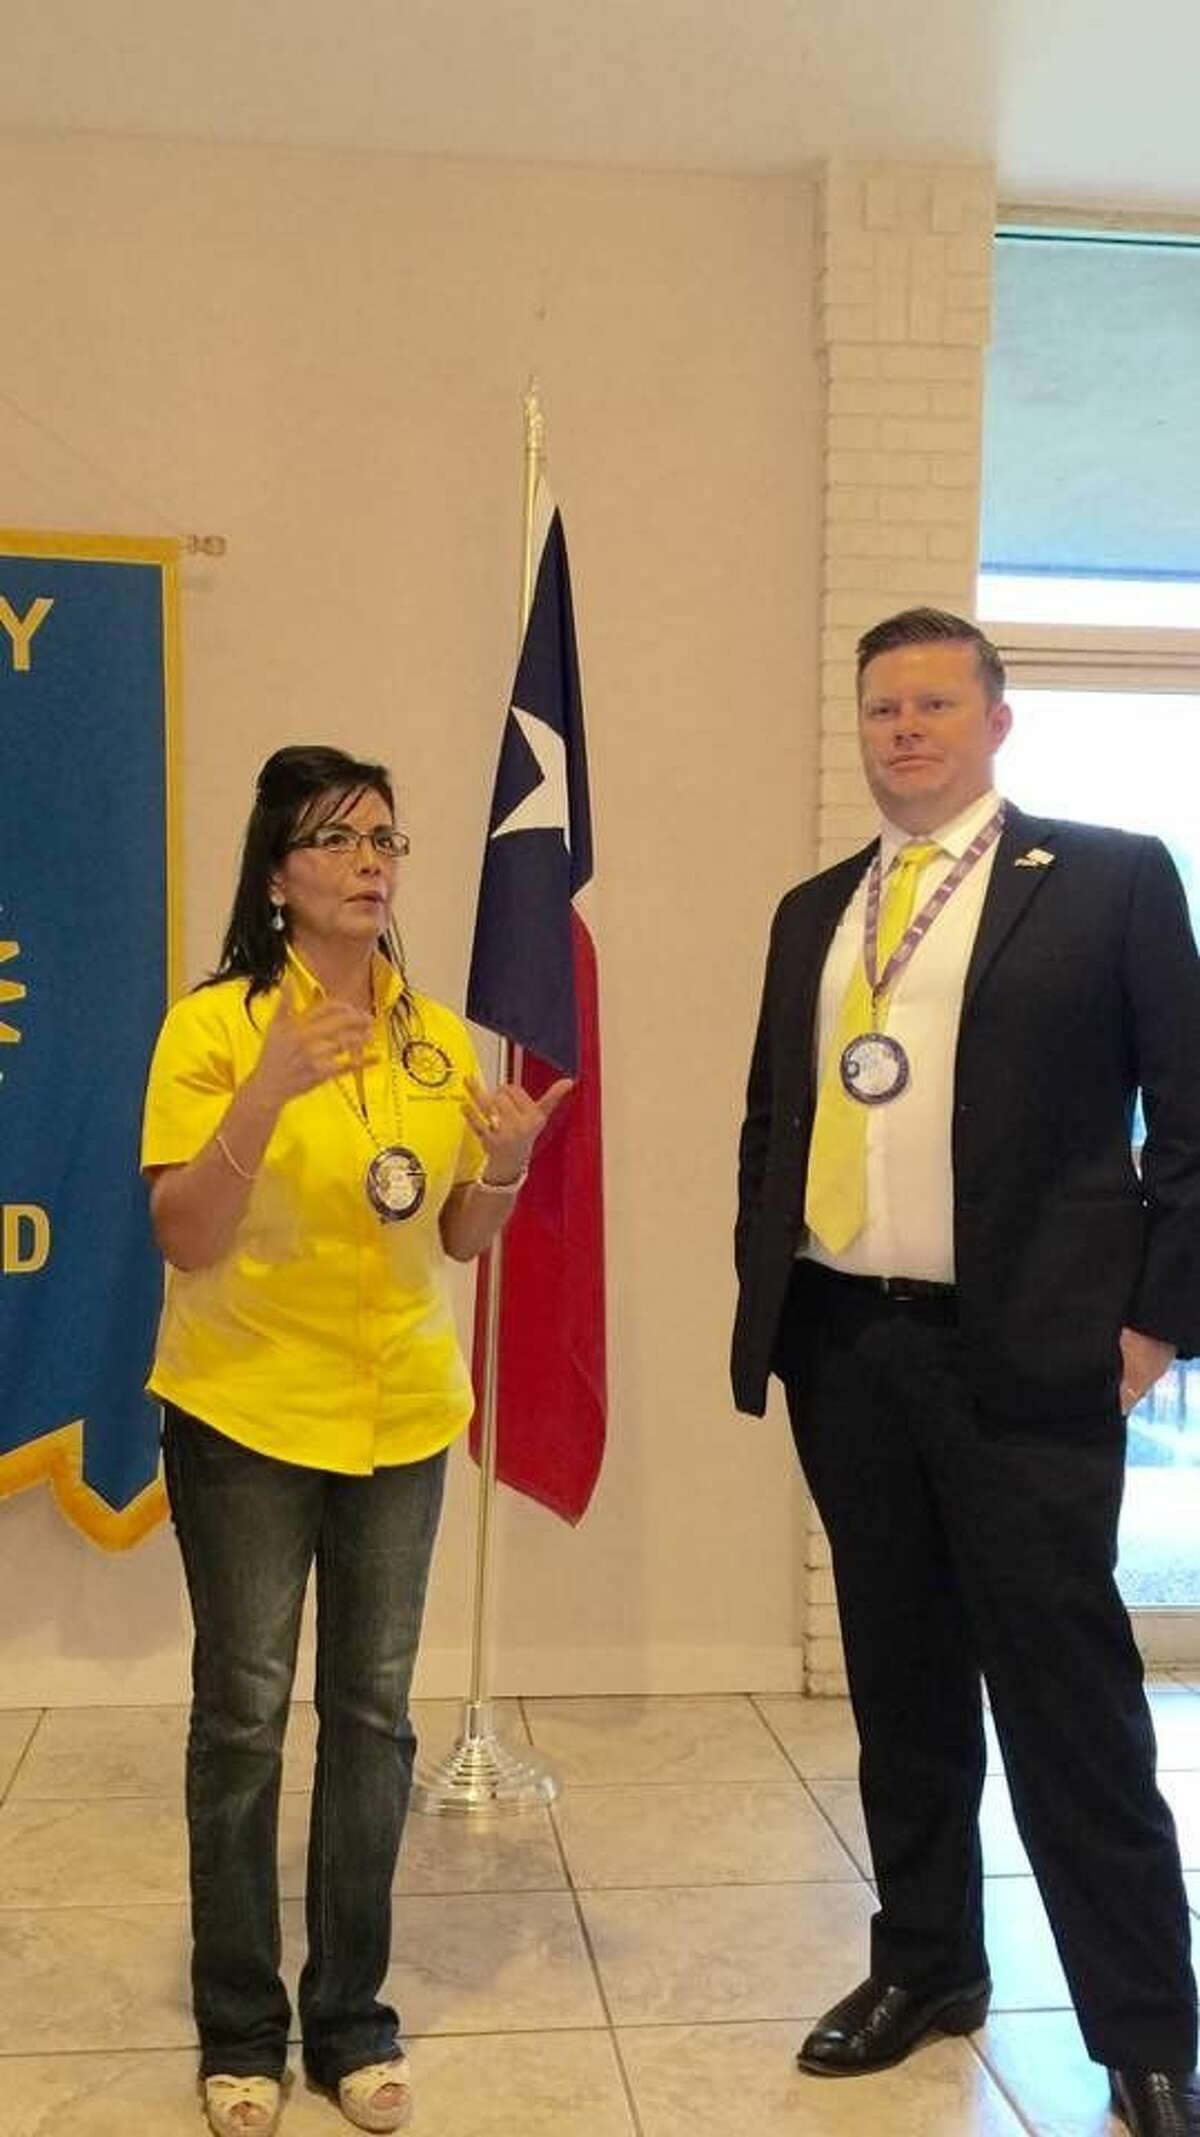 Pictured are Richmond Rotary Club President Liz Moreno and Eric Junker, Rotarian of the Month.